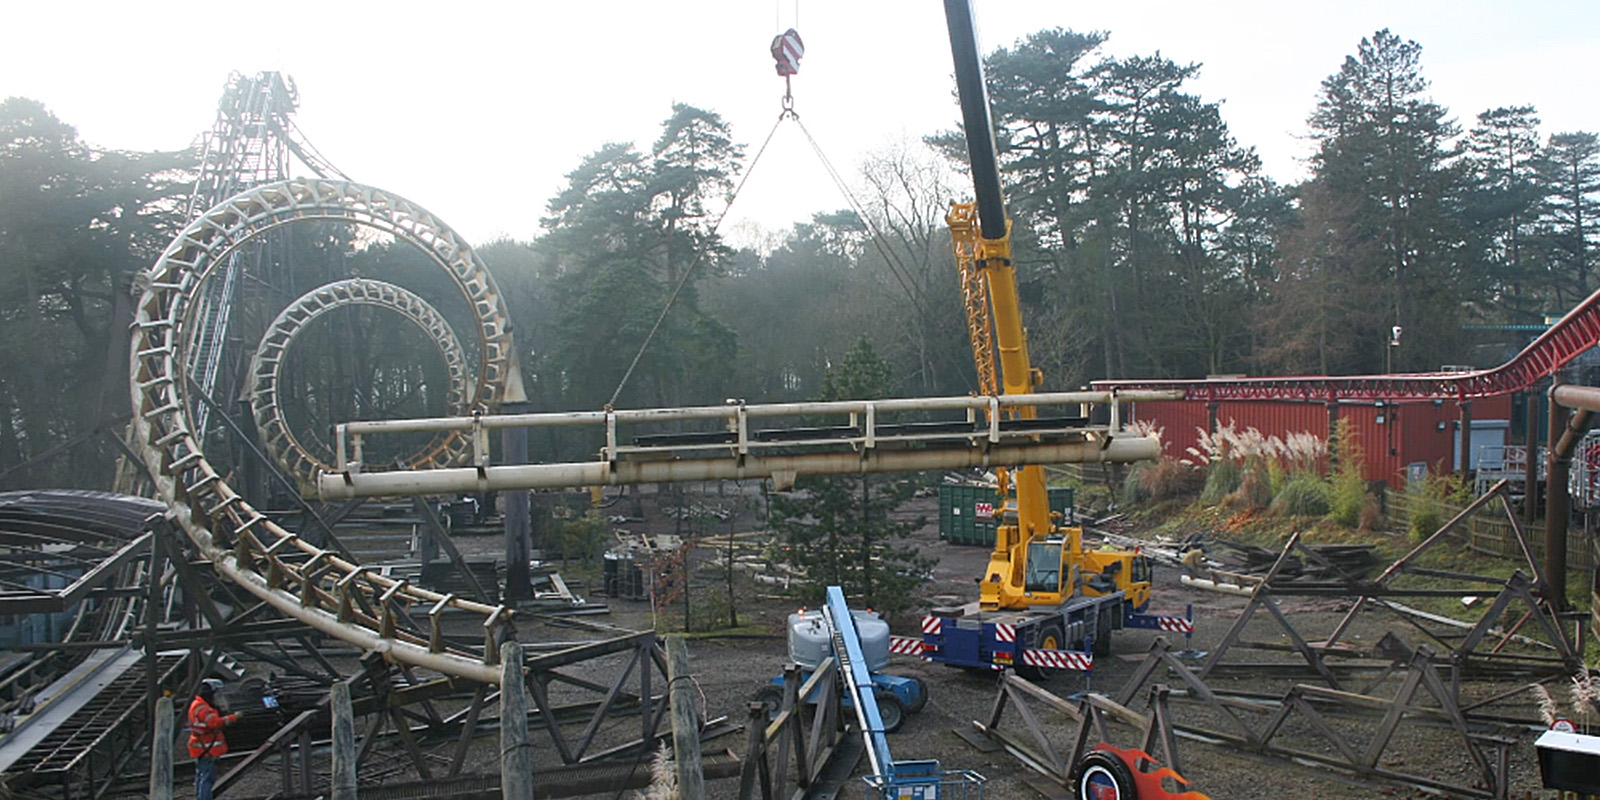 Roller Coaster Demolition : Corkscrew demolition time lapse systems by hideaway